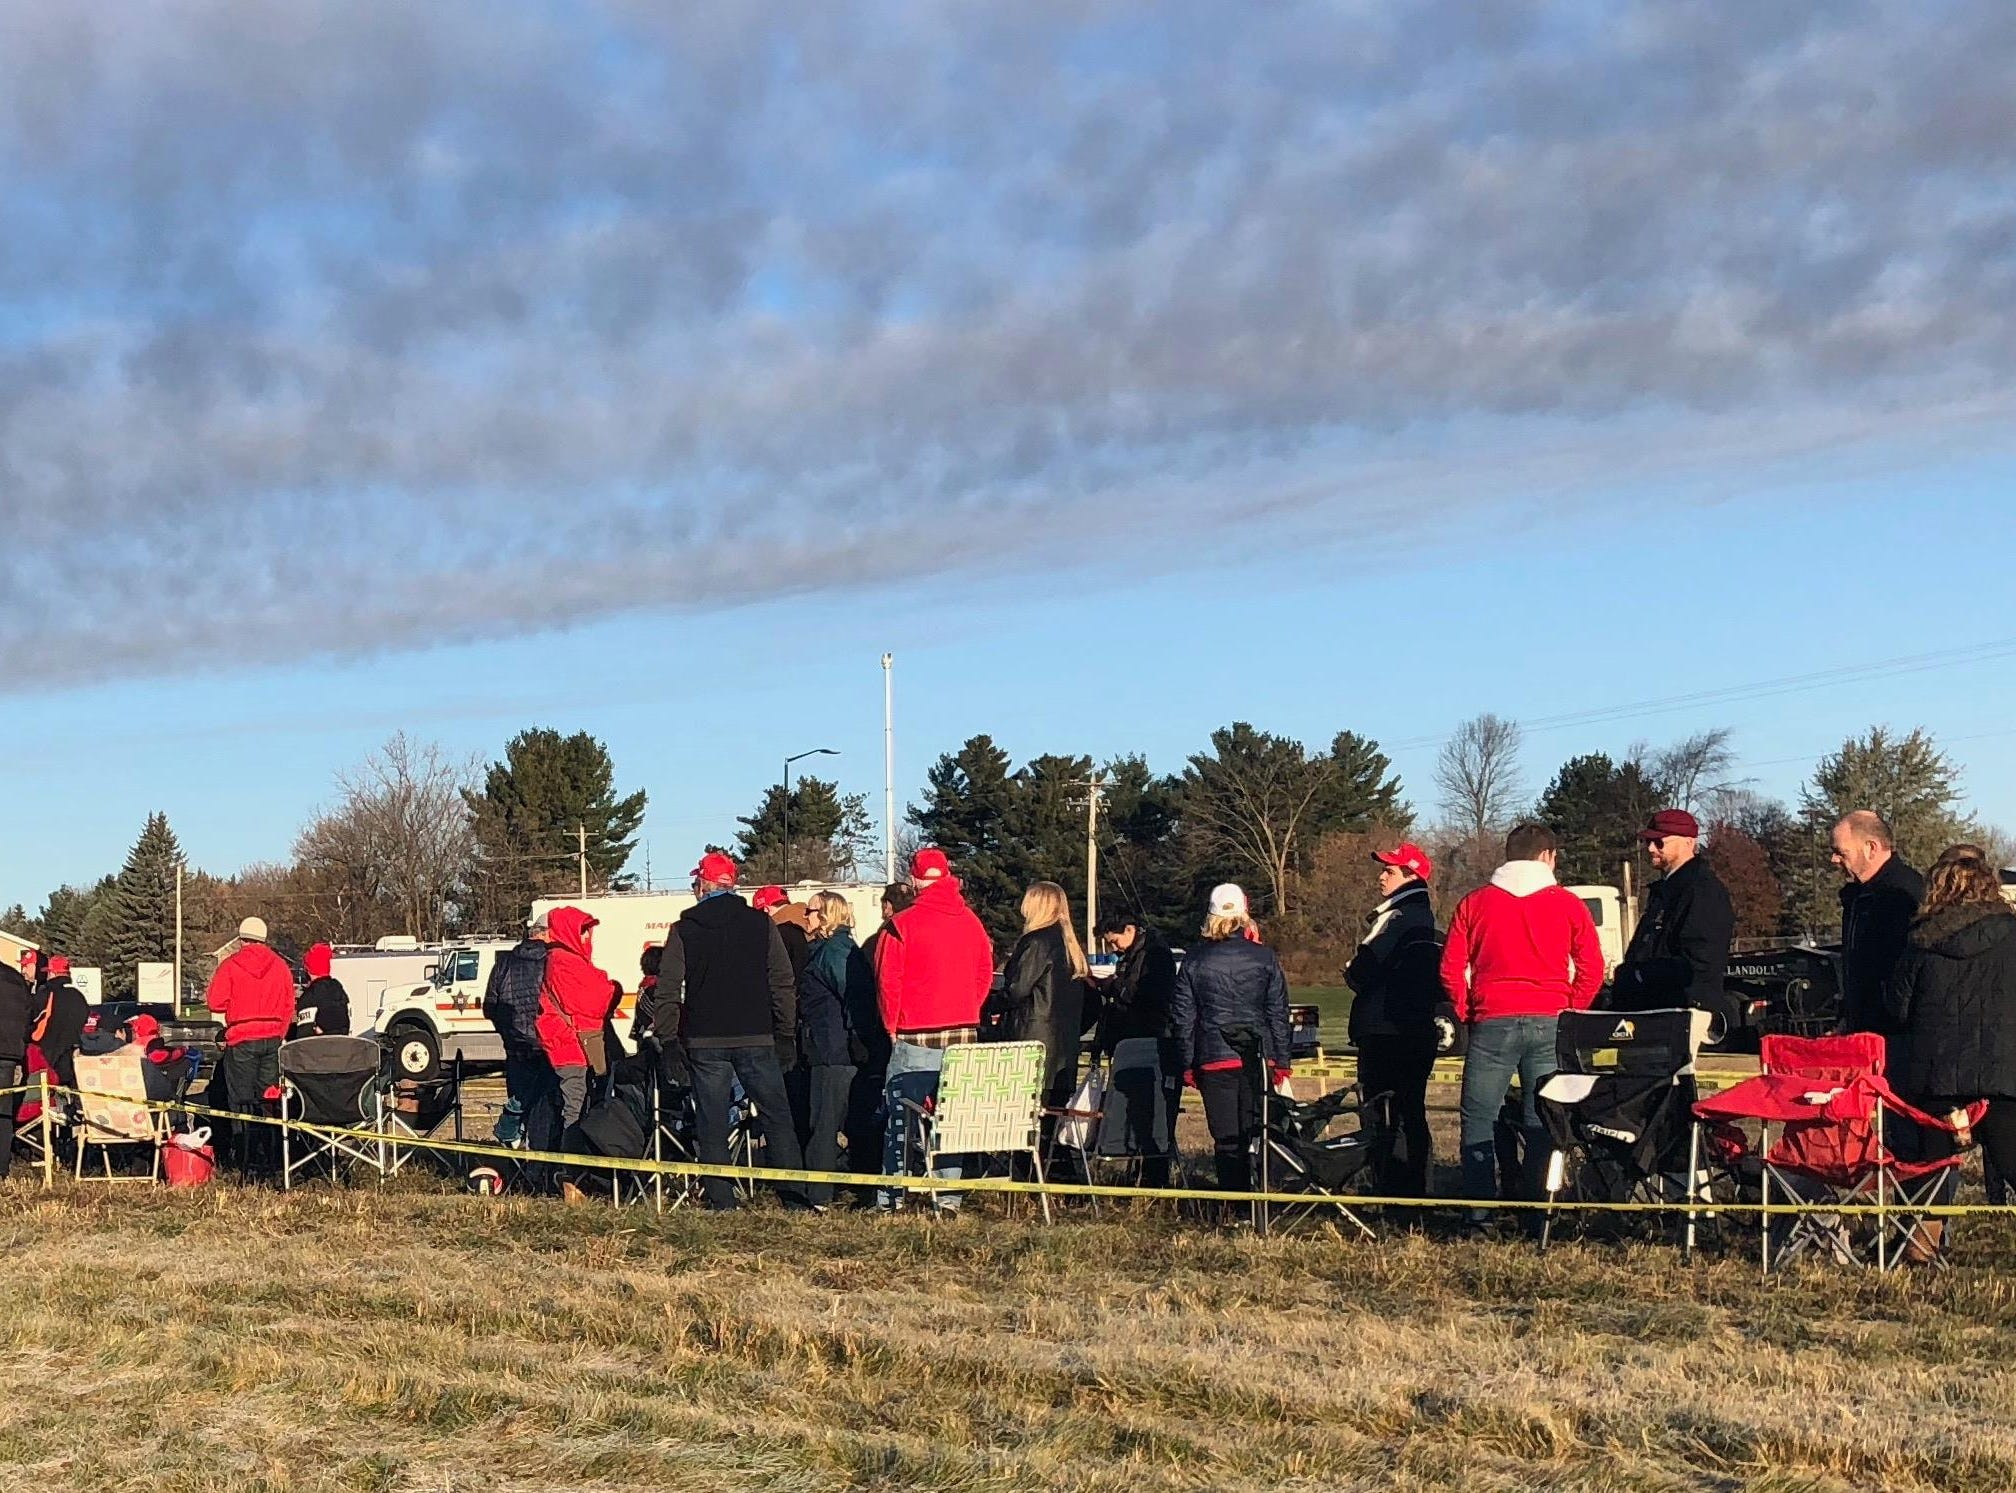 Trump fans in line for the presidential rally on Wednesday at 8:15 a.m.